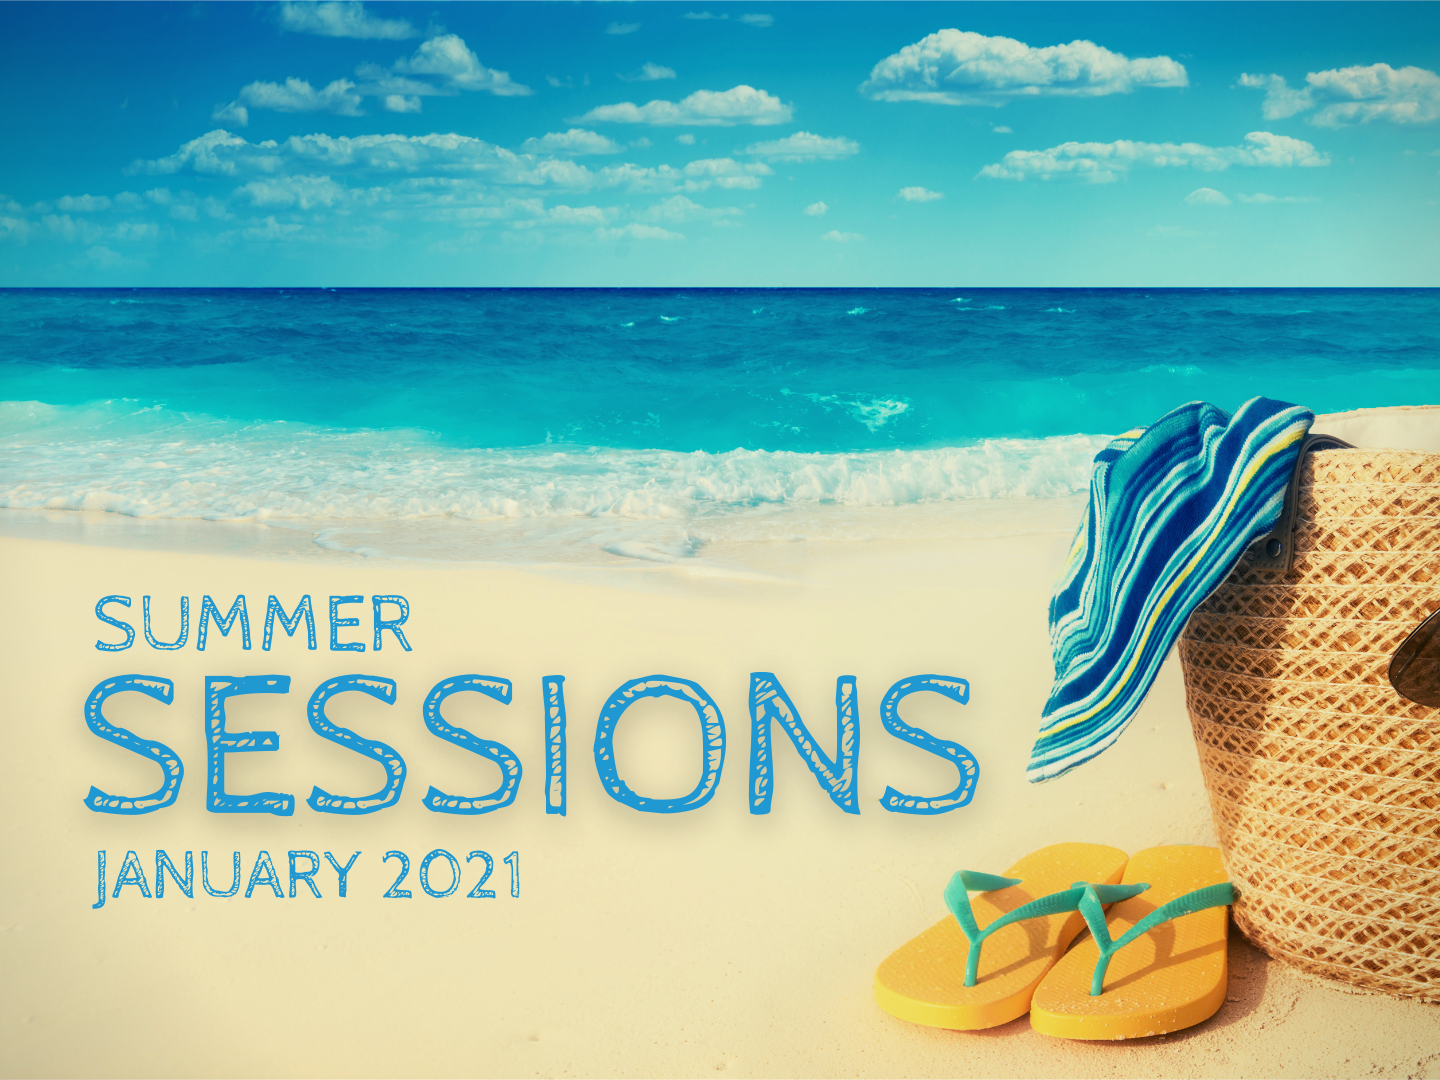 The Summer Sessions - January 2021